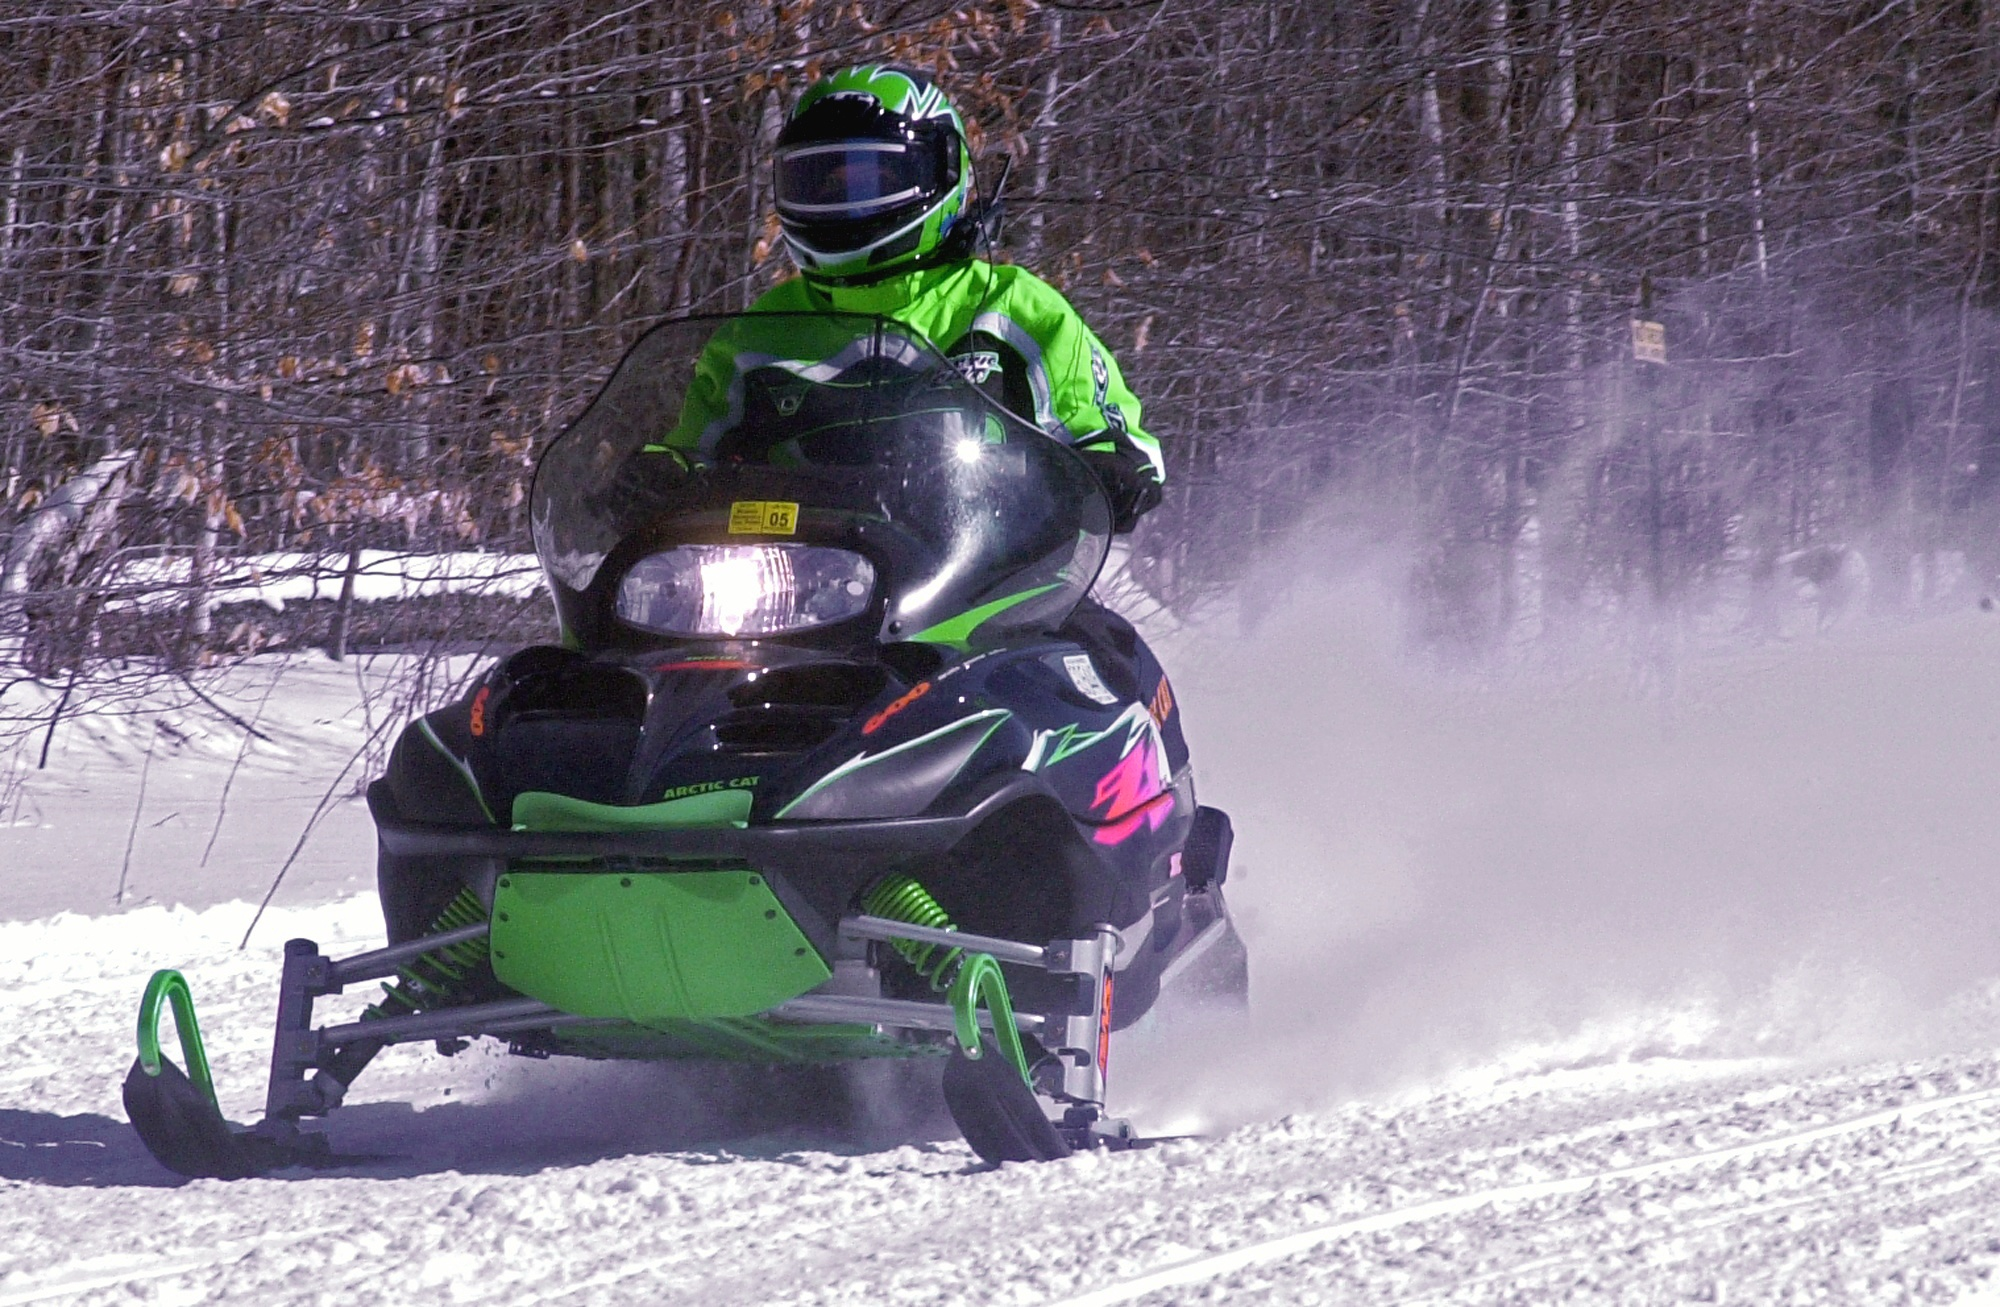 An accident involving 2 snowmobiles has ended in the death of a Connecticut mother.